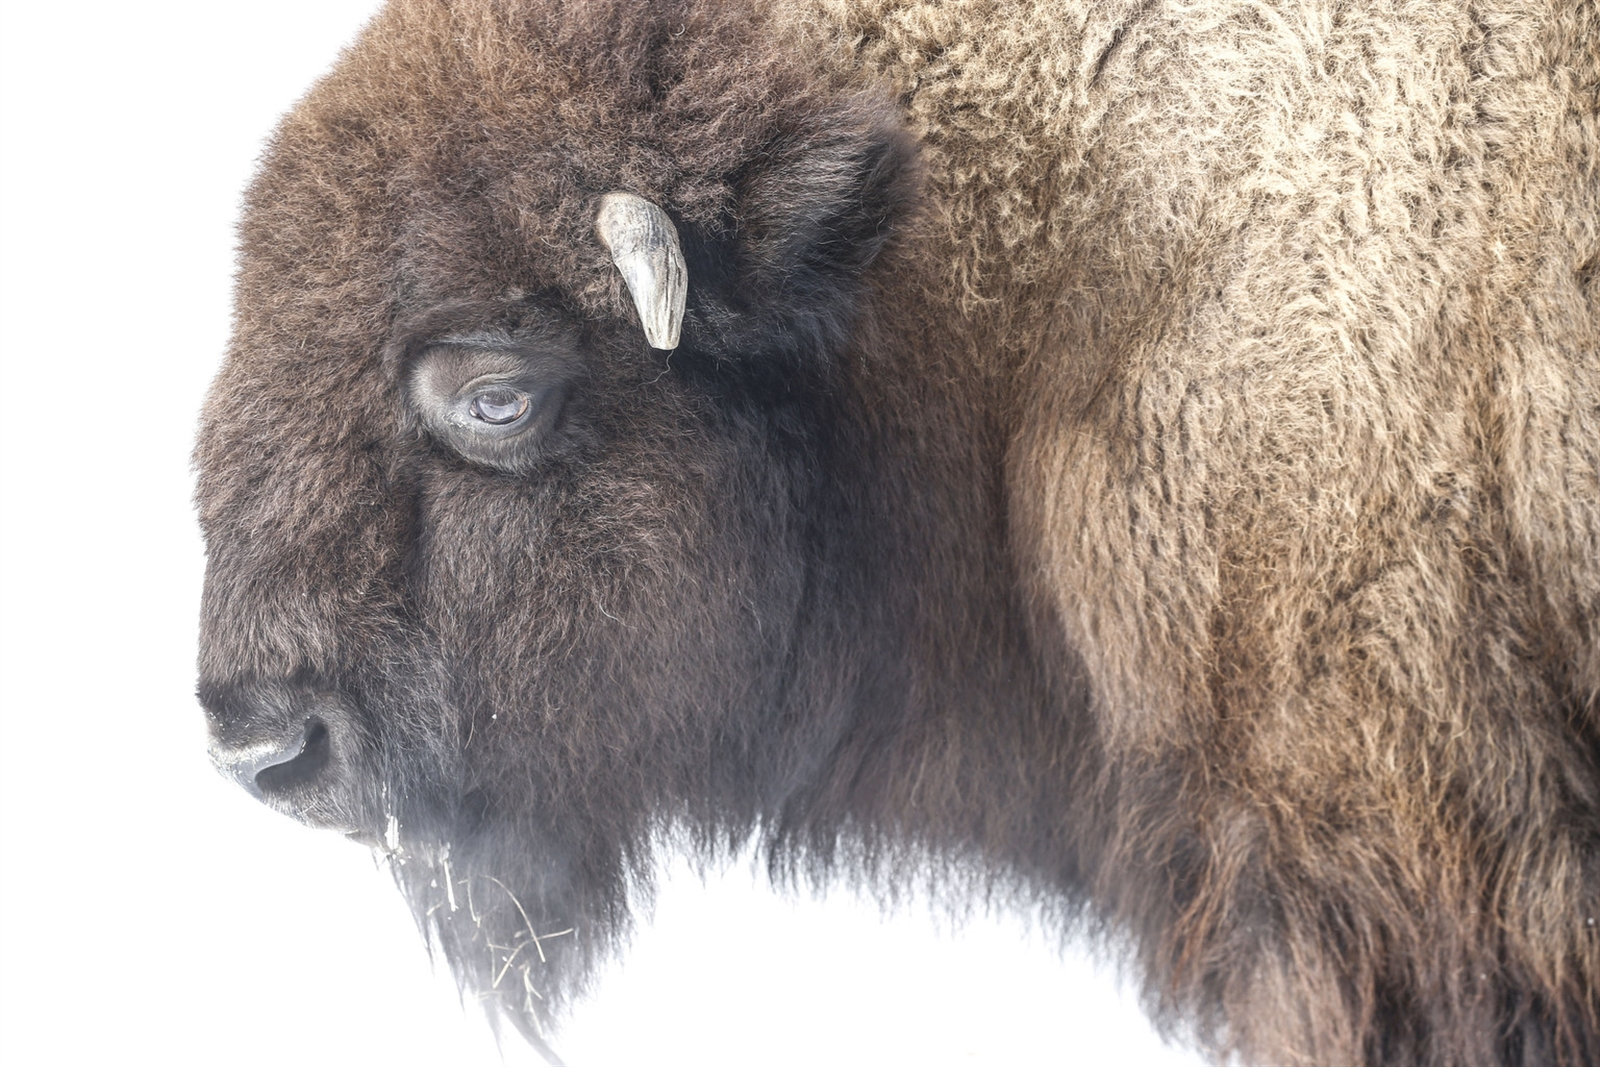 An American bison at the Buffalo Zoo, Wednesday, Jan. 3, 2018.